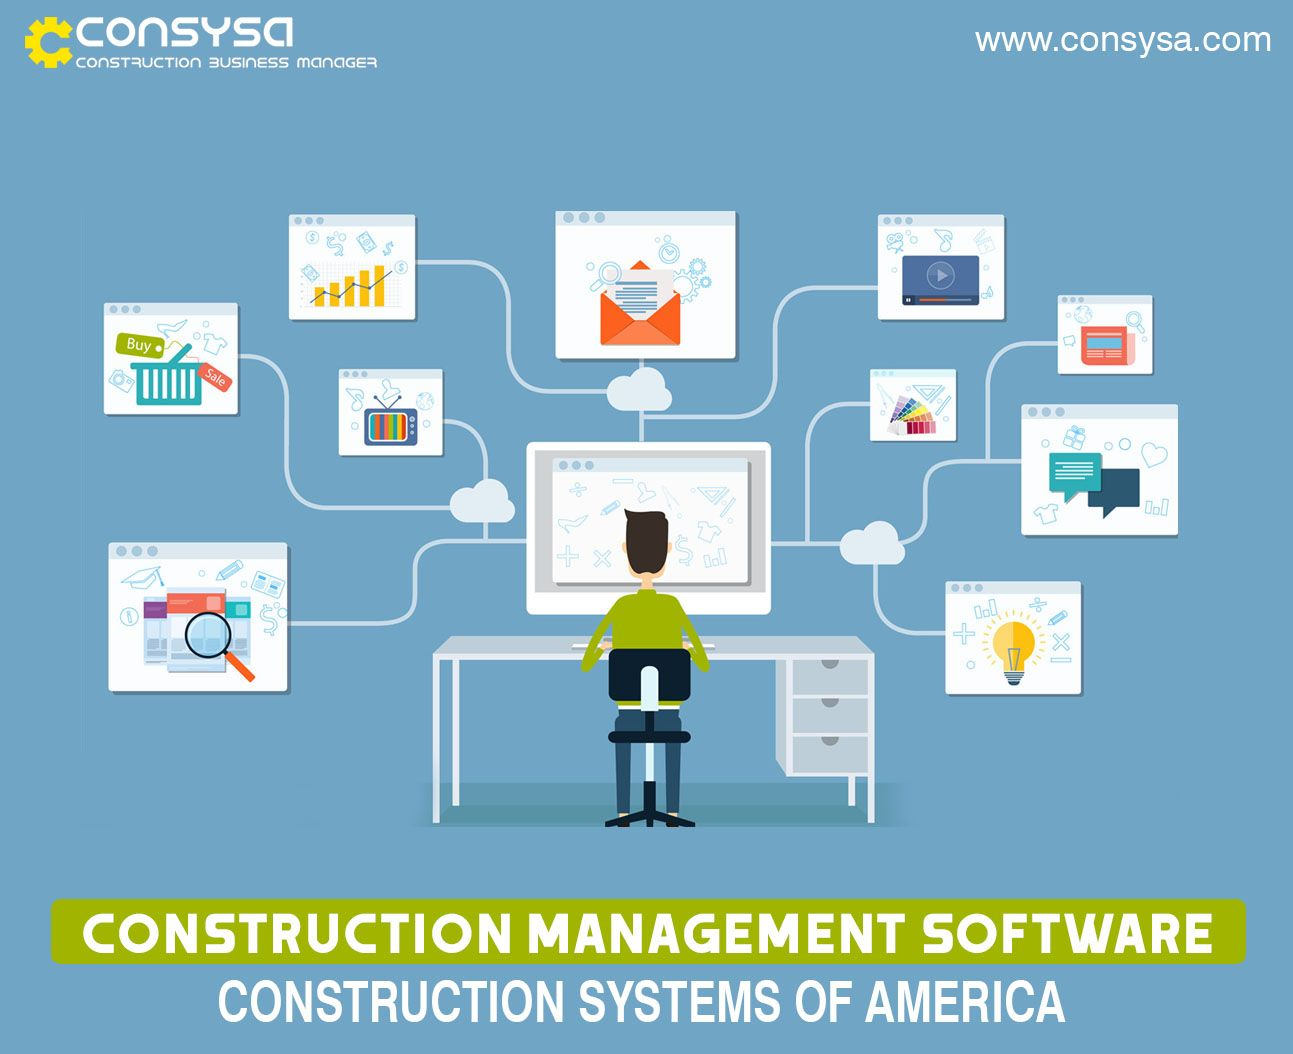 CONSYSA is Cloudbased construction software that helps